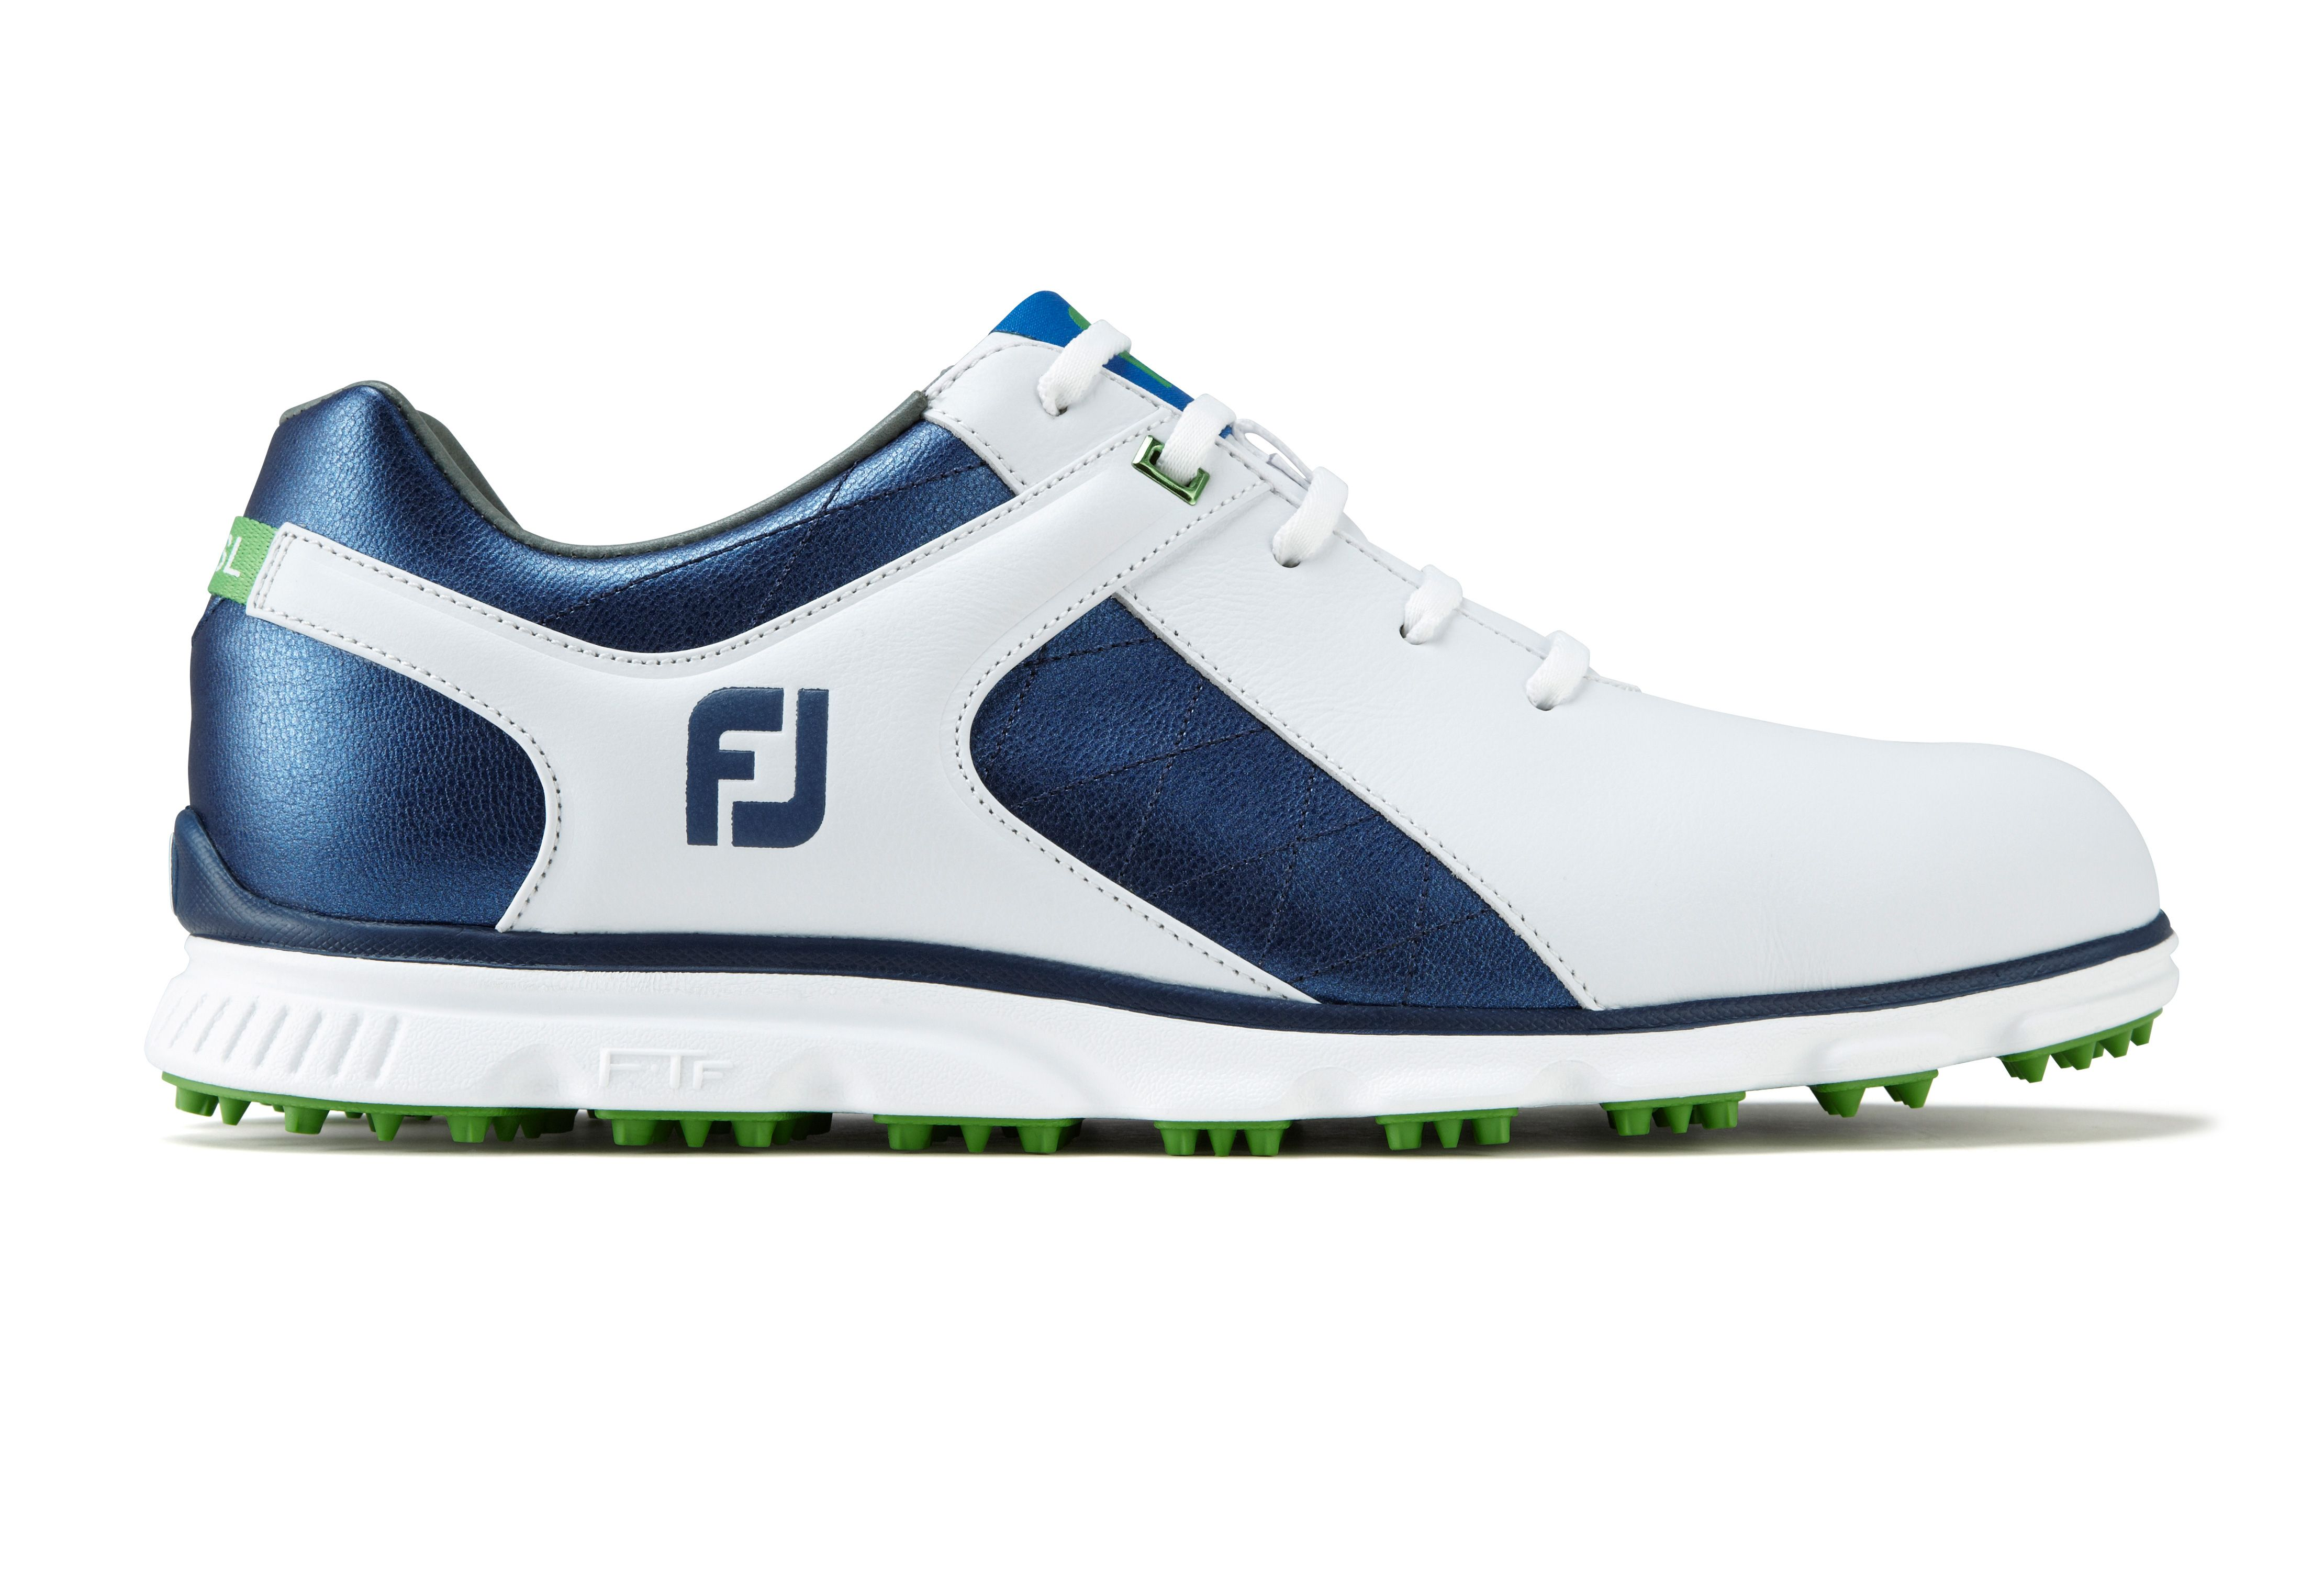 the best attitude 0e211 15a51 It could be one of the worst kept secrets in golf equipment history but the  FootJoy Pro SL spikeless golf shoes have finally, officially, been unveiled.